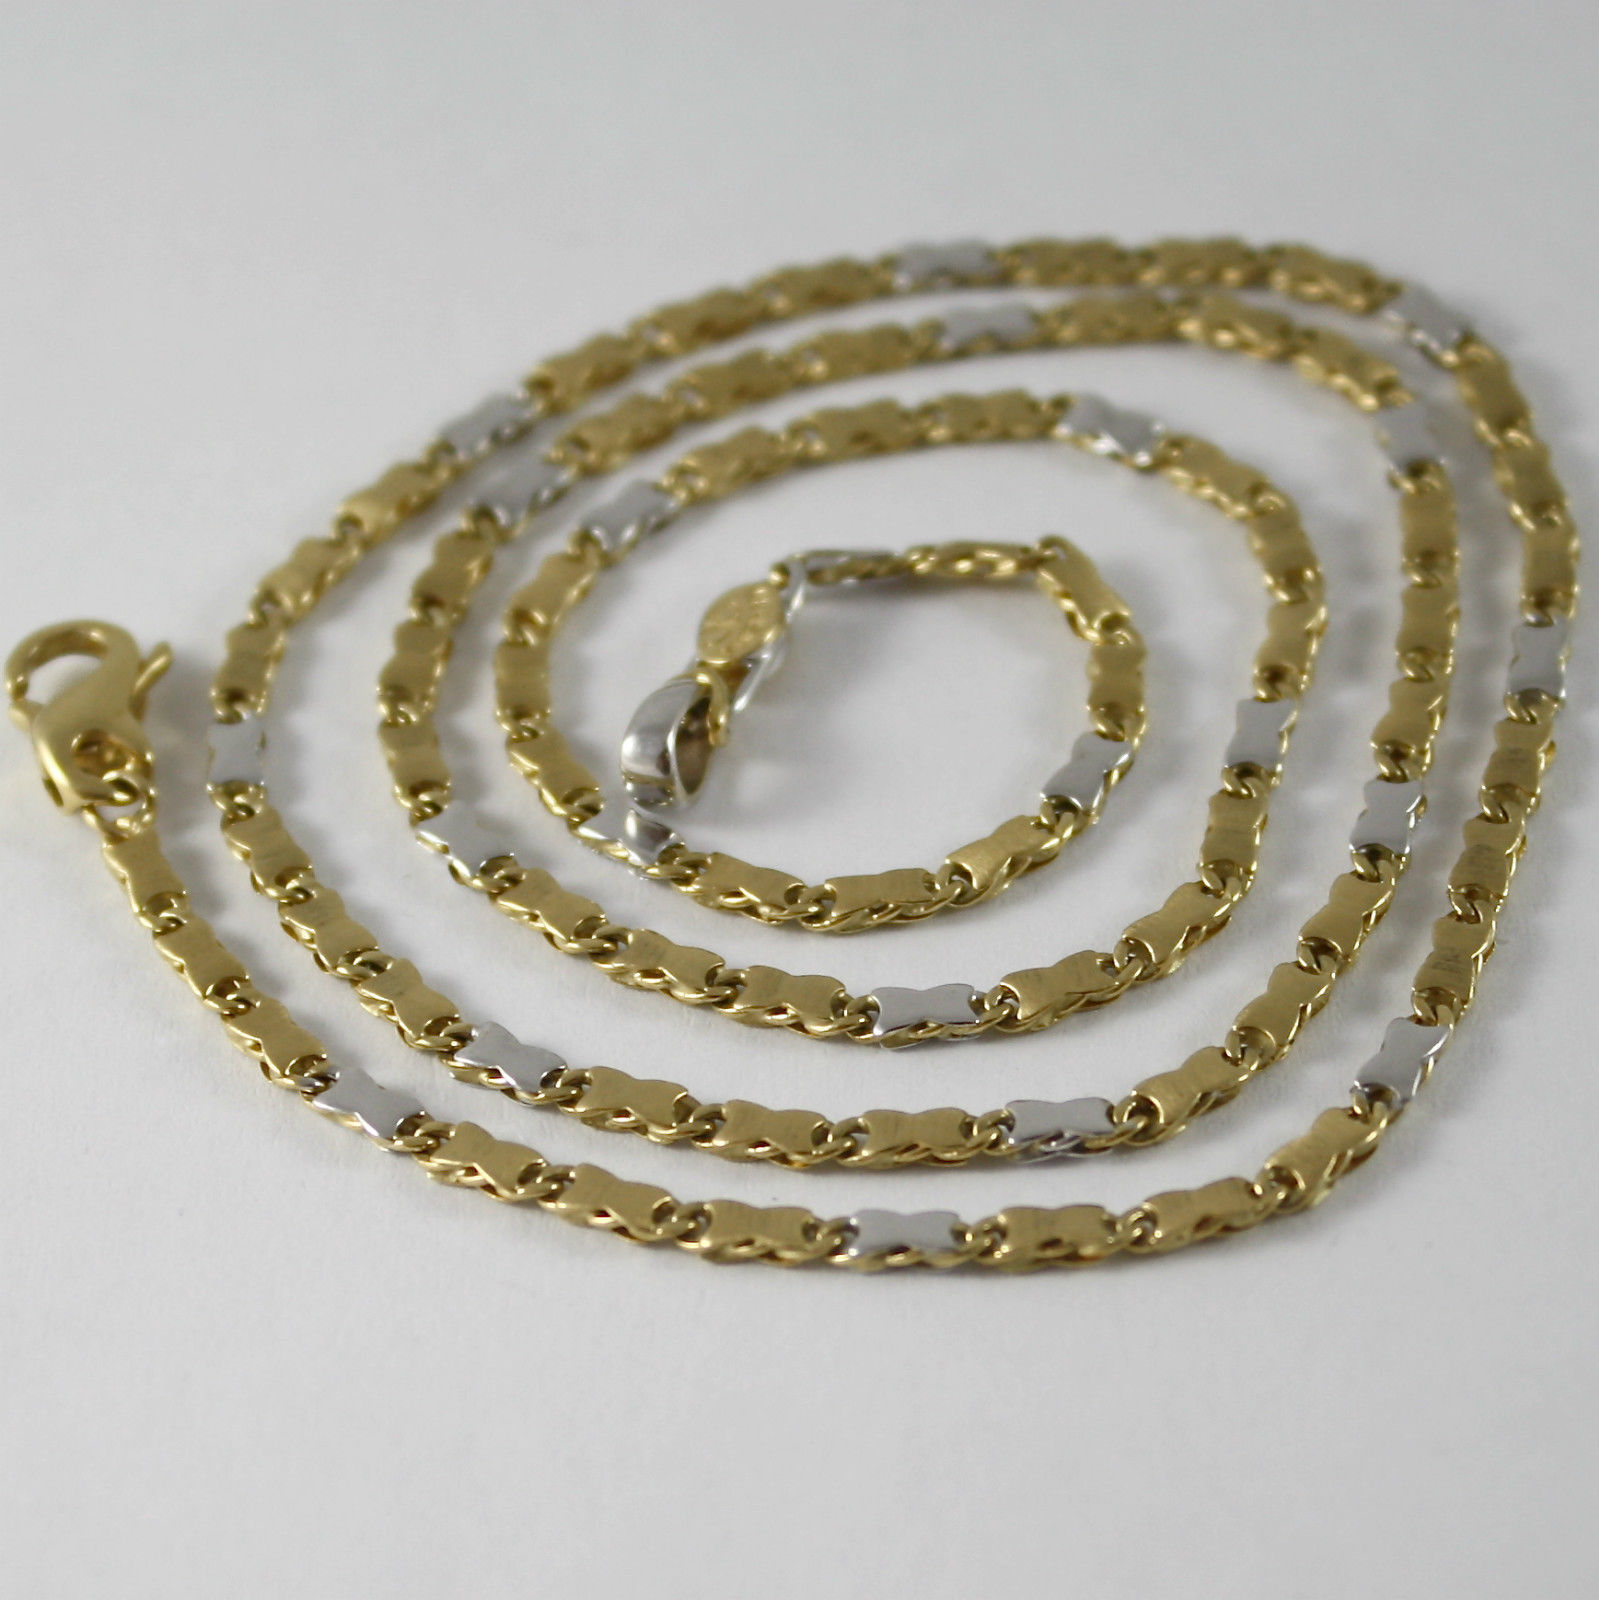 SOLID 18K YELLOW AND WHITE GOLD CHAIN NECKLACE, SATIN TUBE MESH, MADE IN ITALY